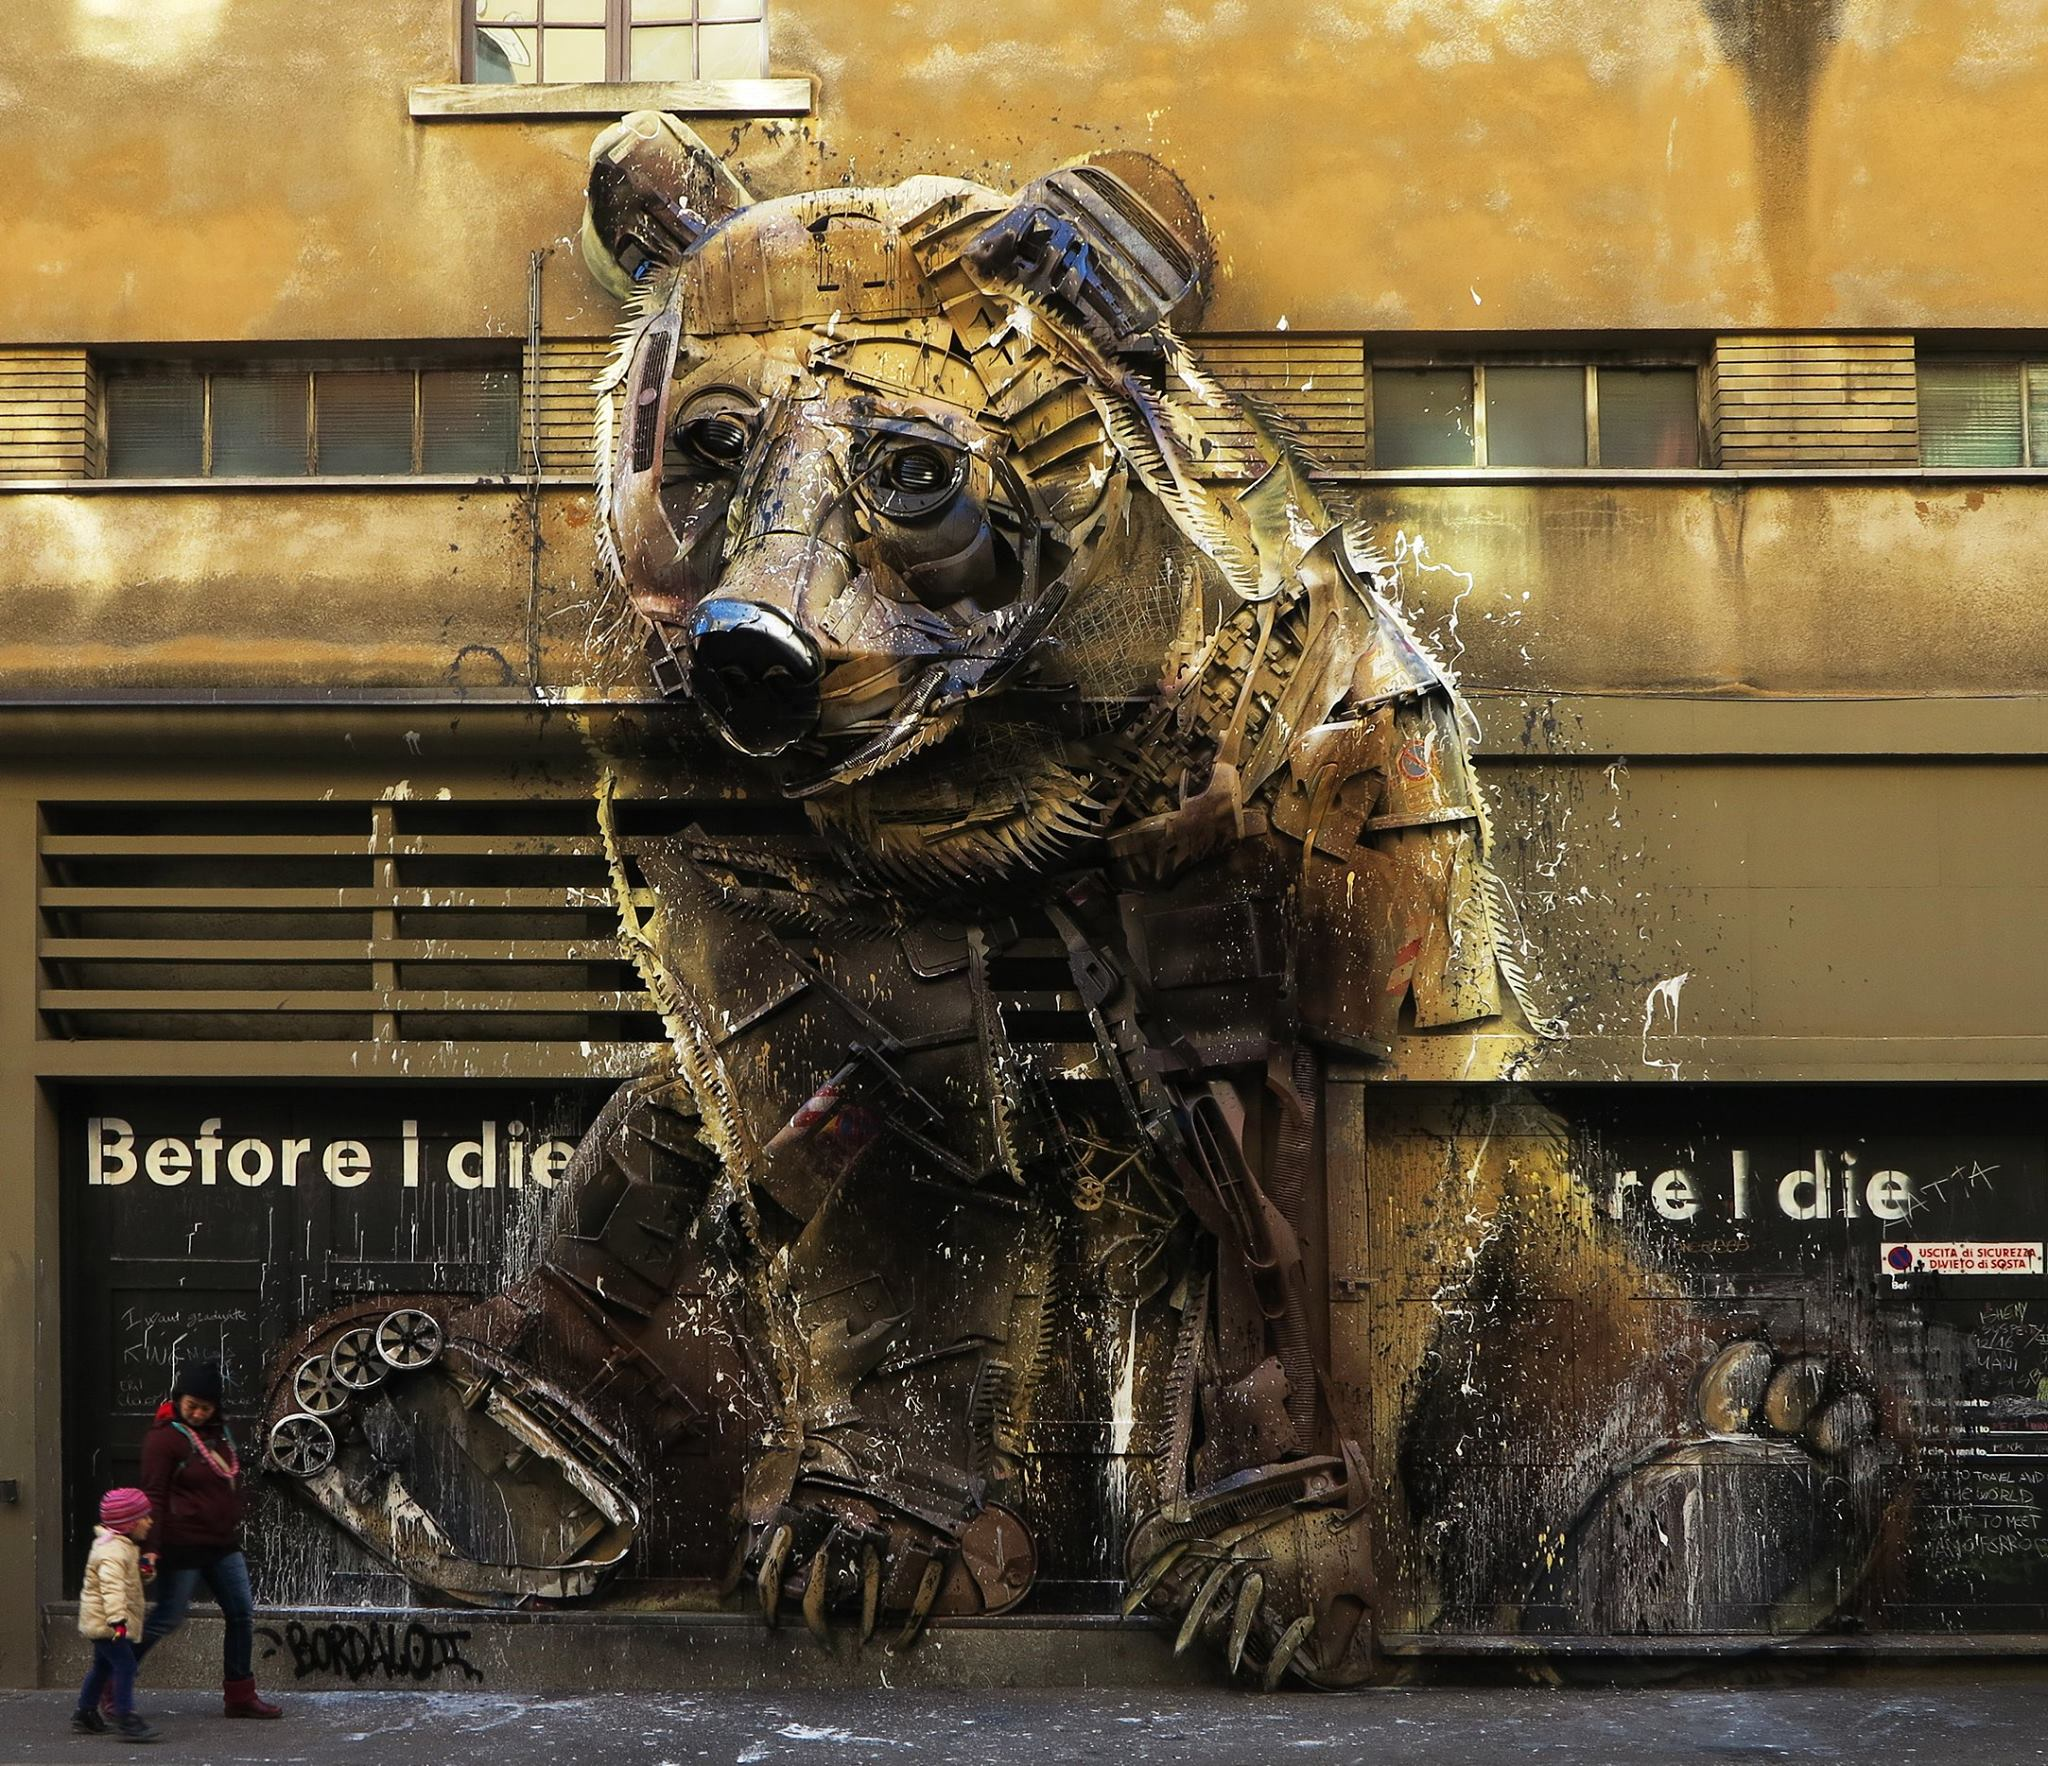 Bear - By Bordalo II in Turin, Italy